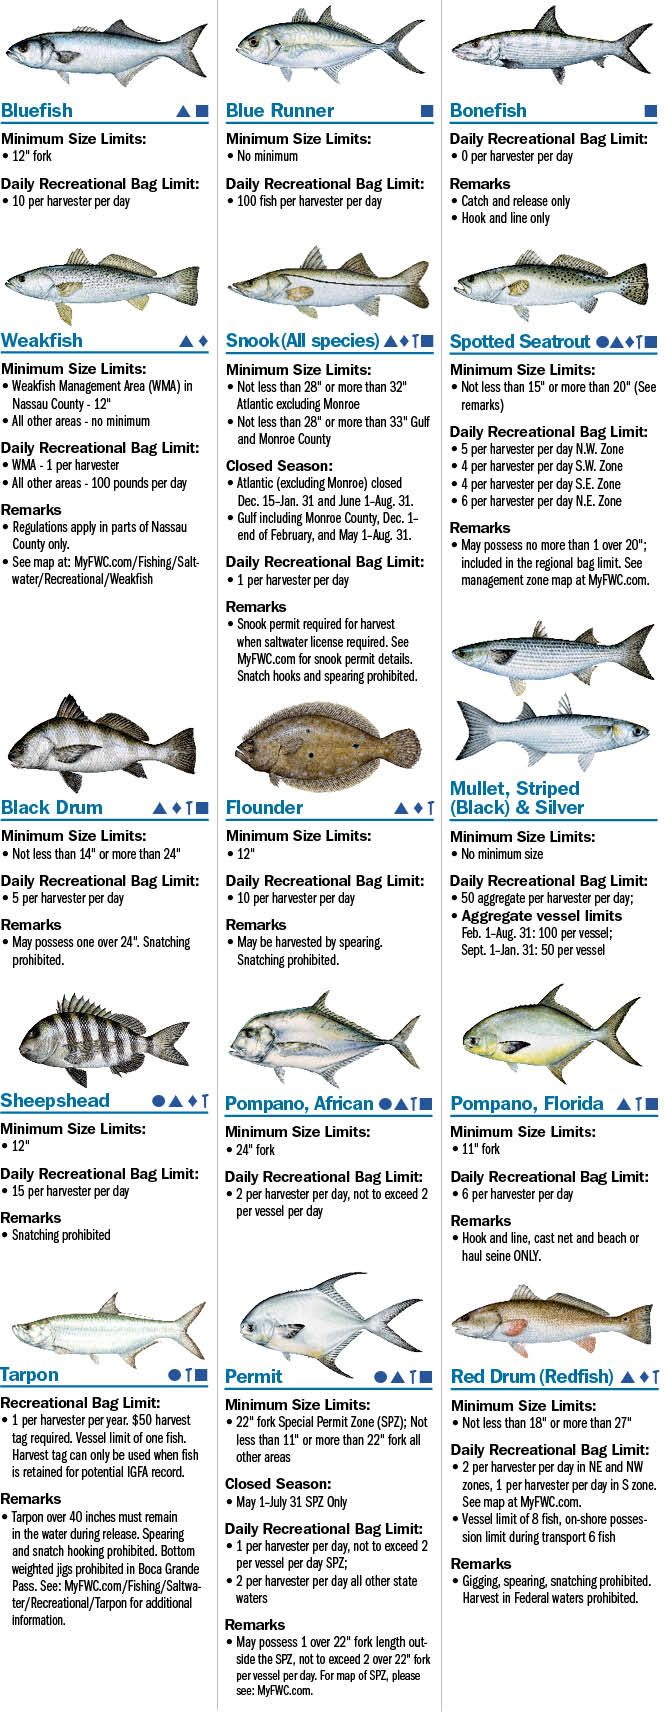 florida saltwater fish size limits